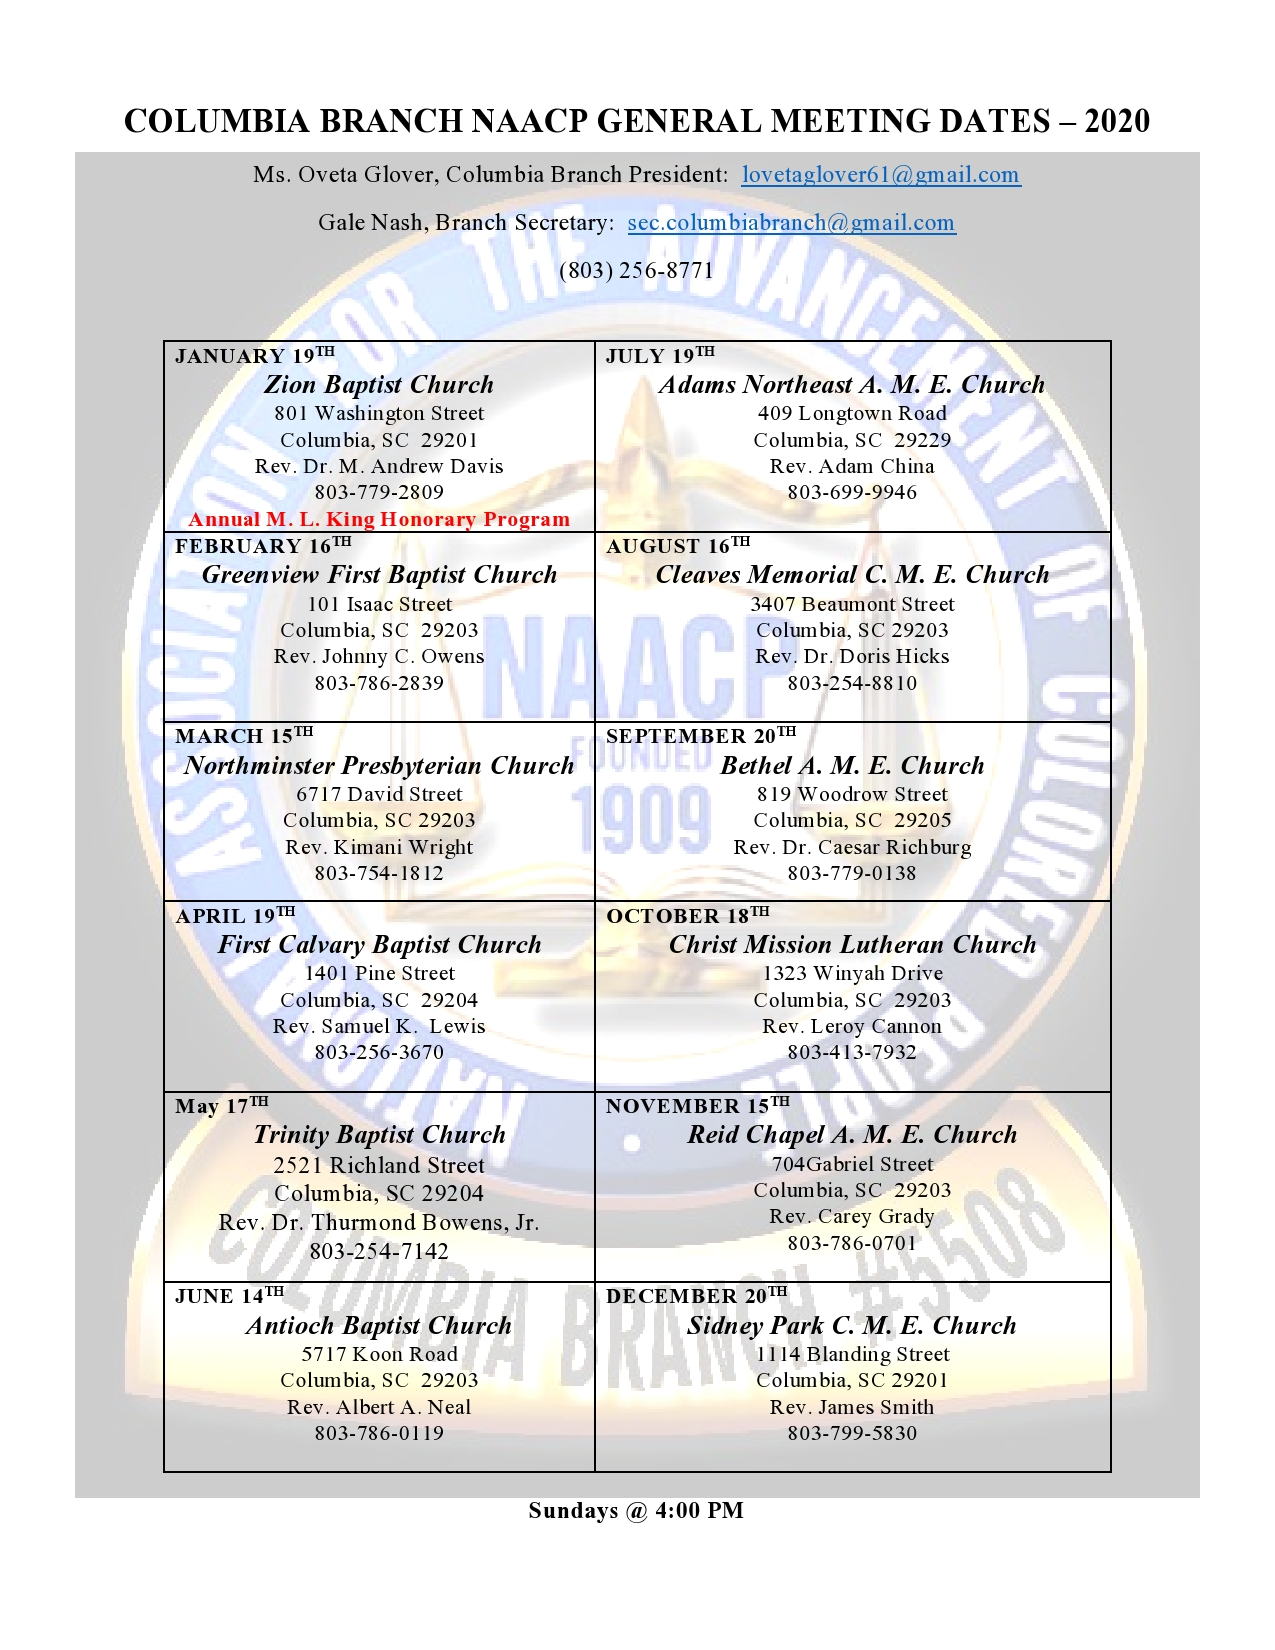 Yearly General Meeting Dates and Places